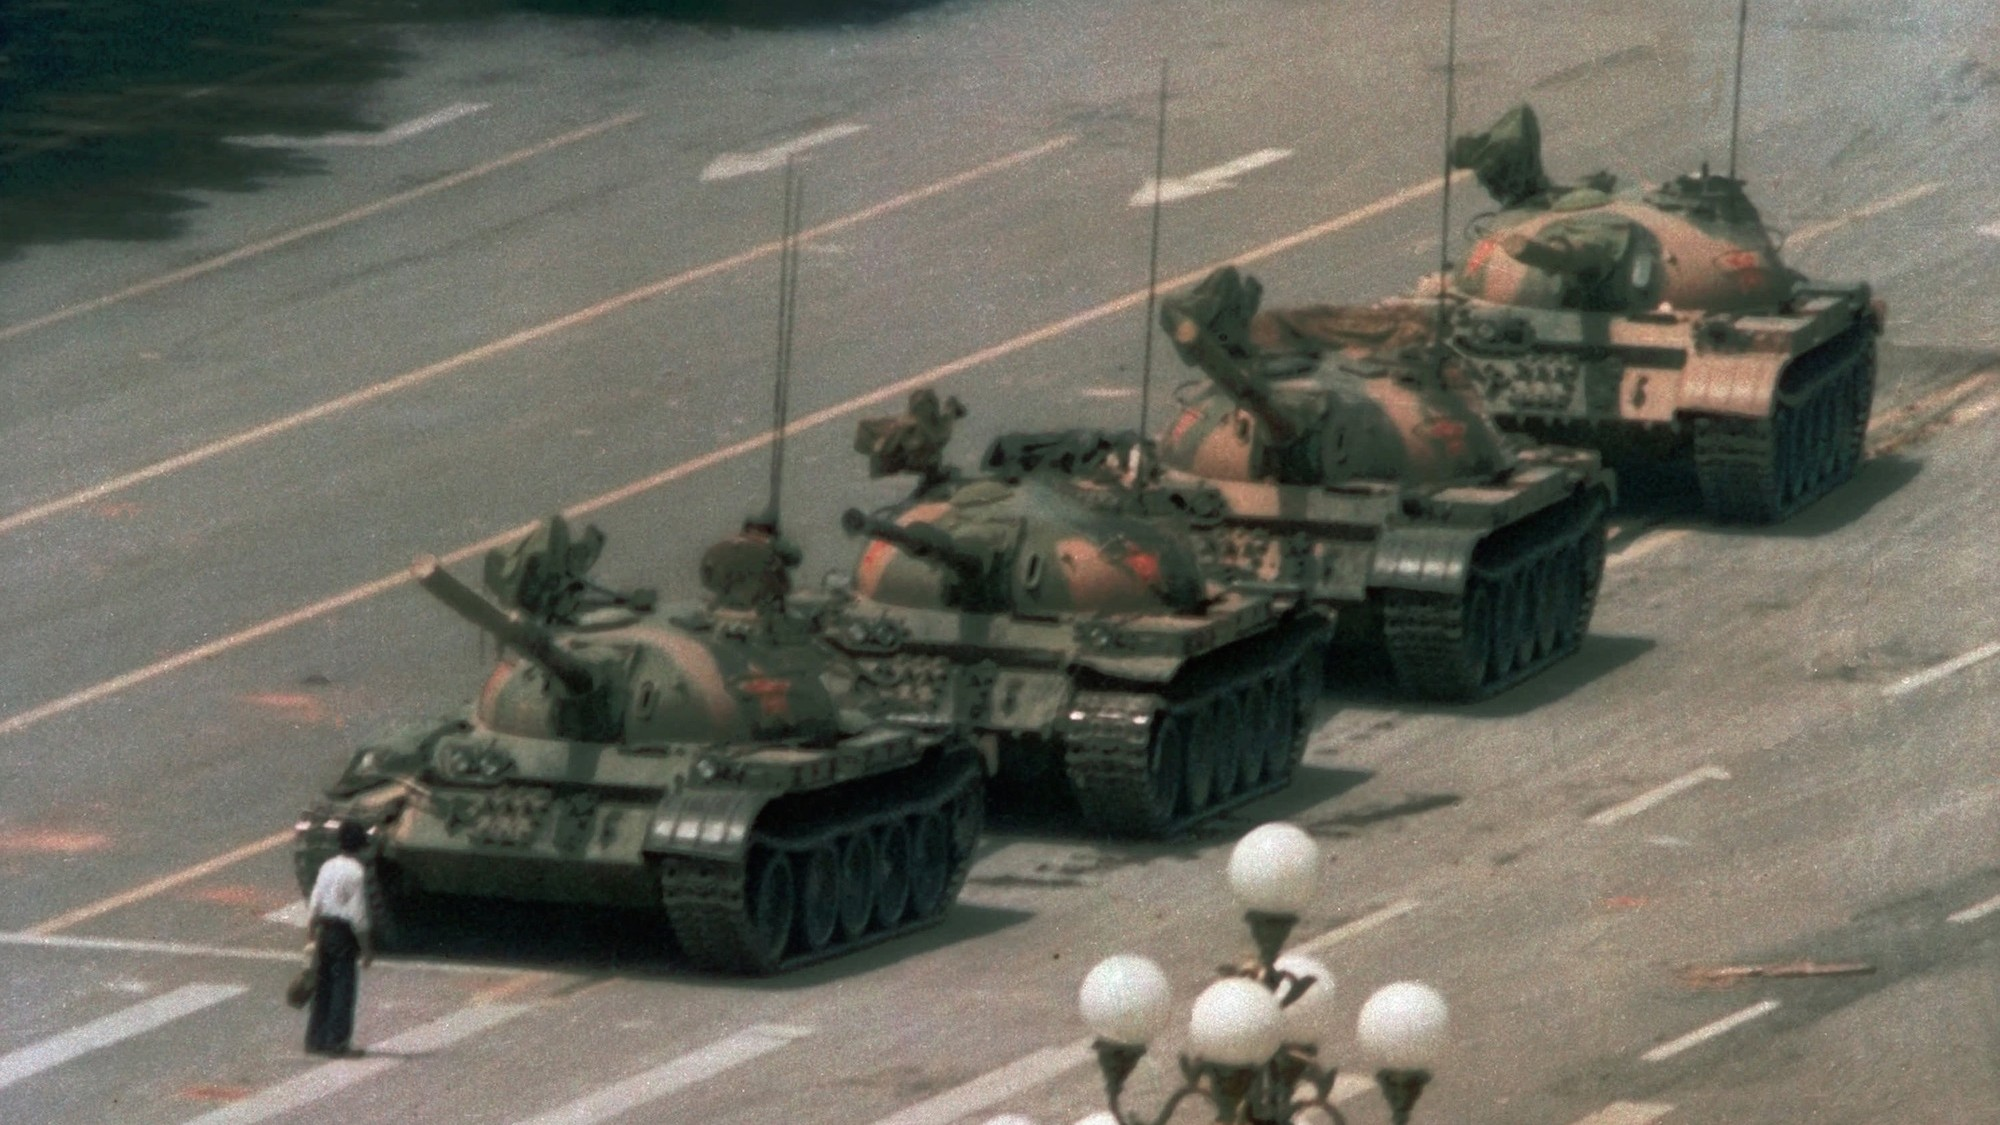 If China Ever Uses Copyright to Censor Tank Man, It Will Be America's Fault